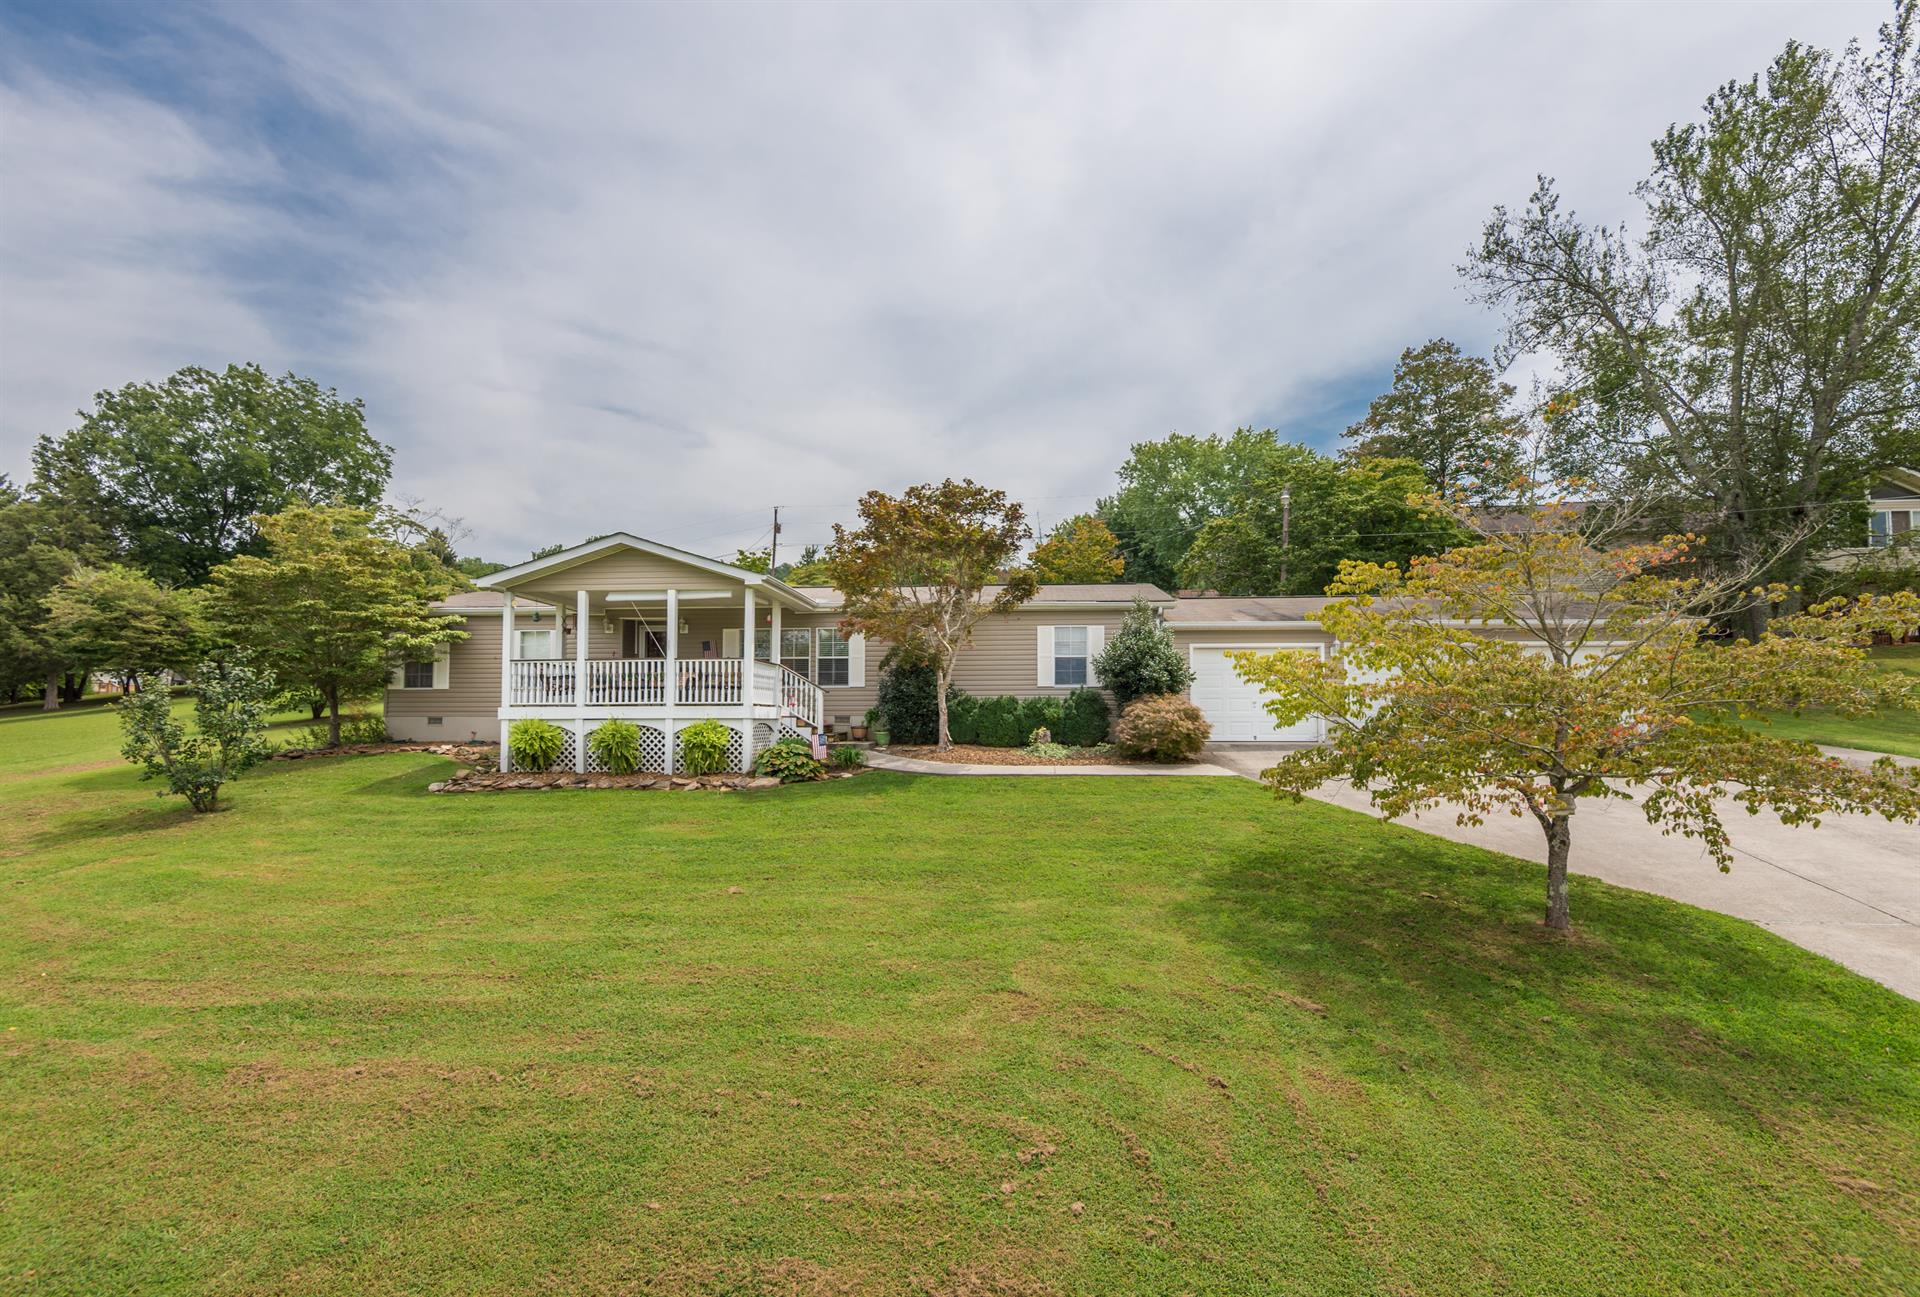 Additional photo for property listing at 227 Hood Drive 227 Hood Drive Kingston, Tennessee 37763 États-Unis